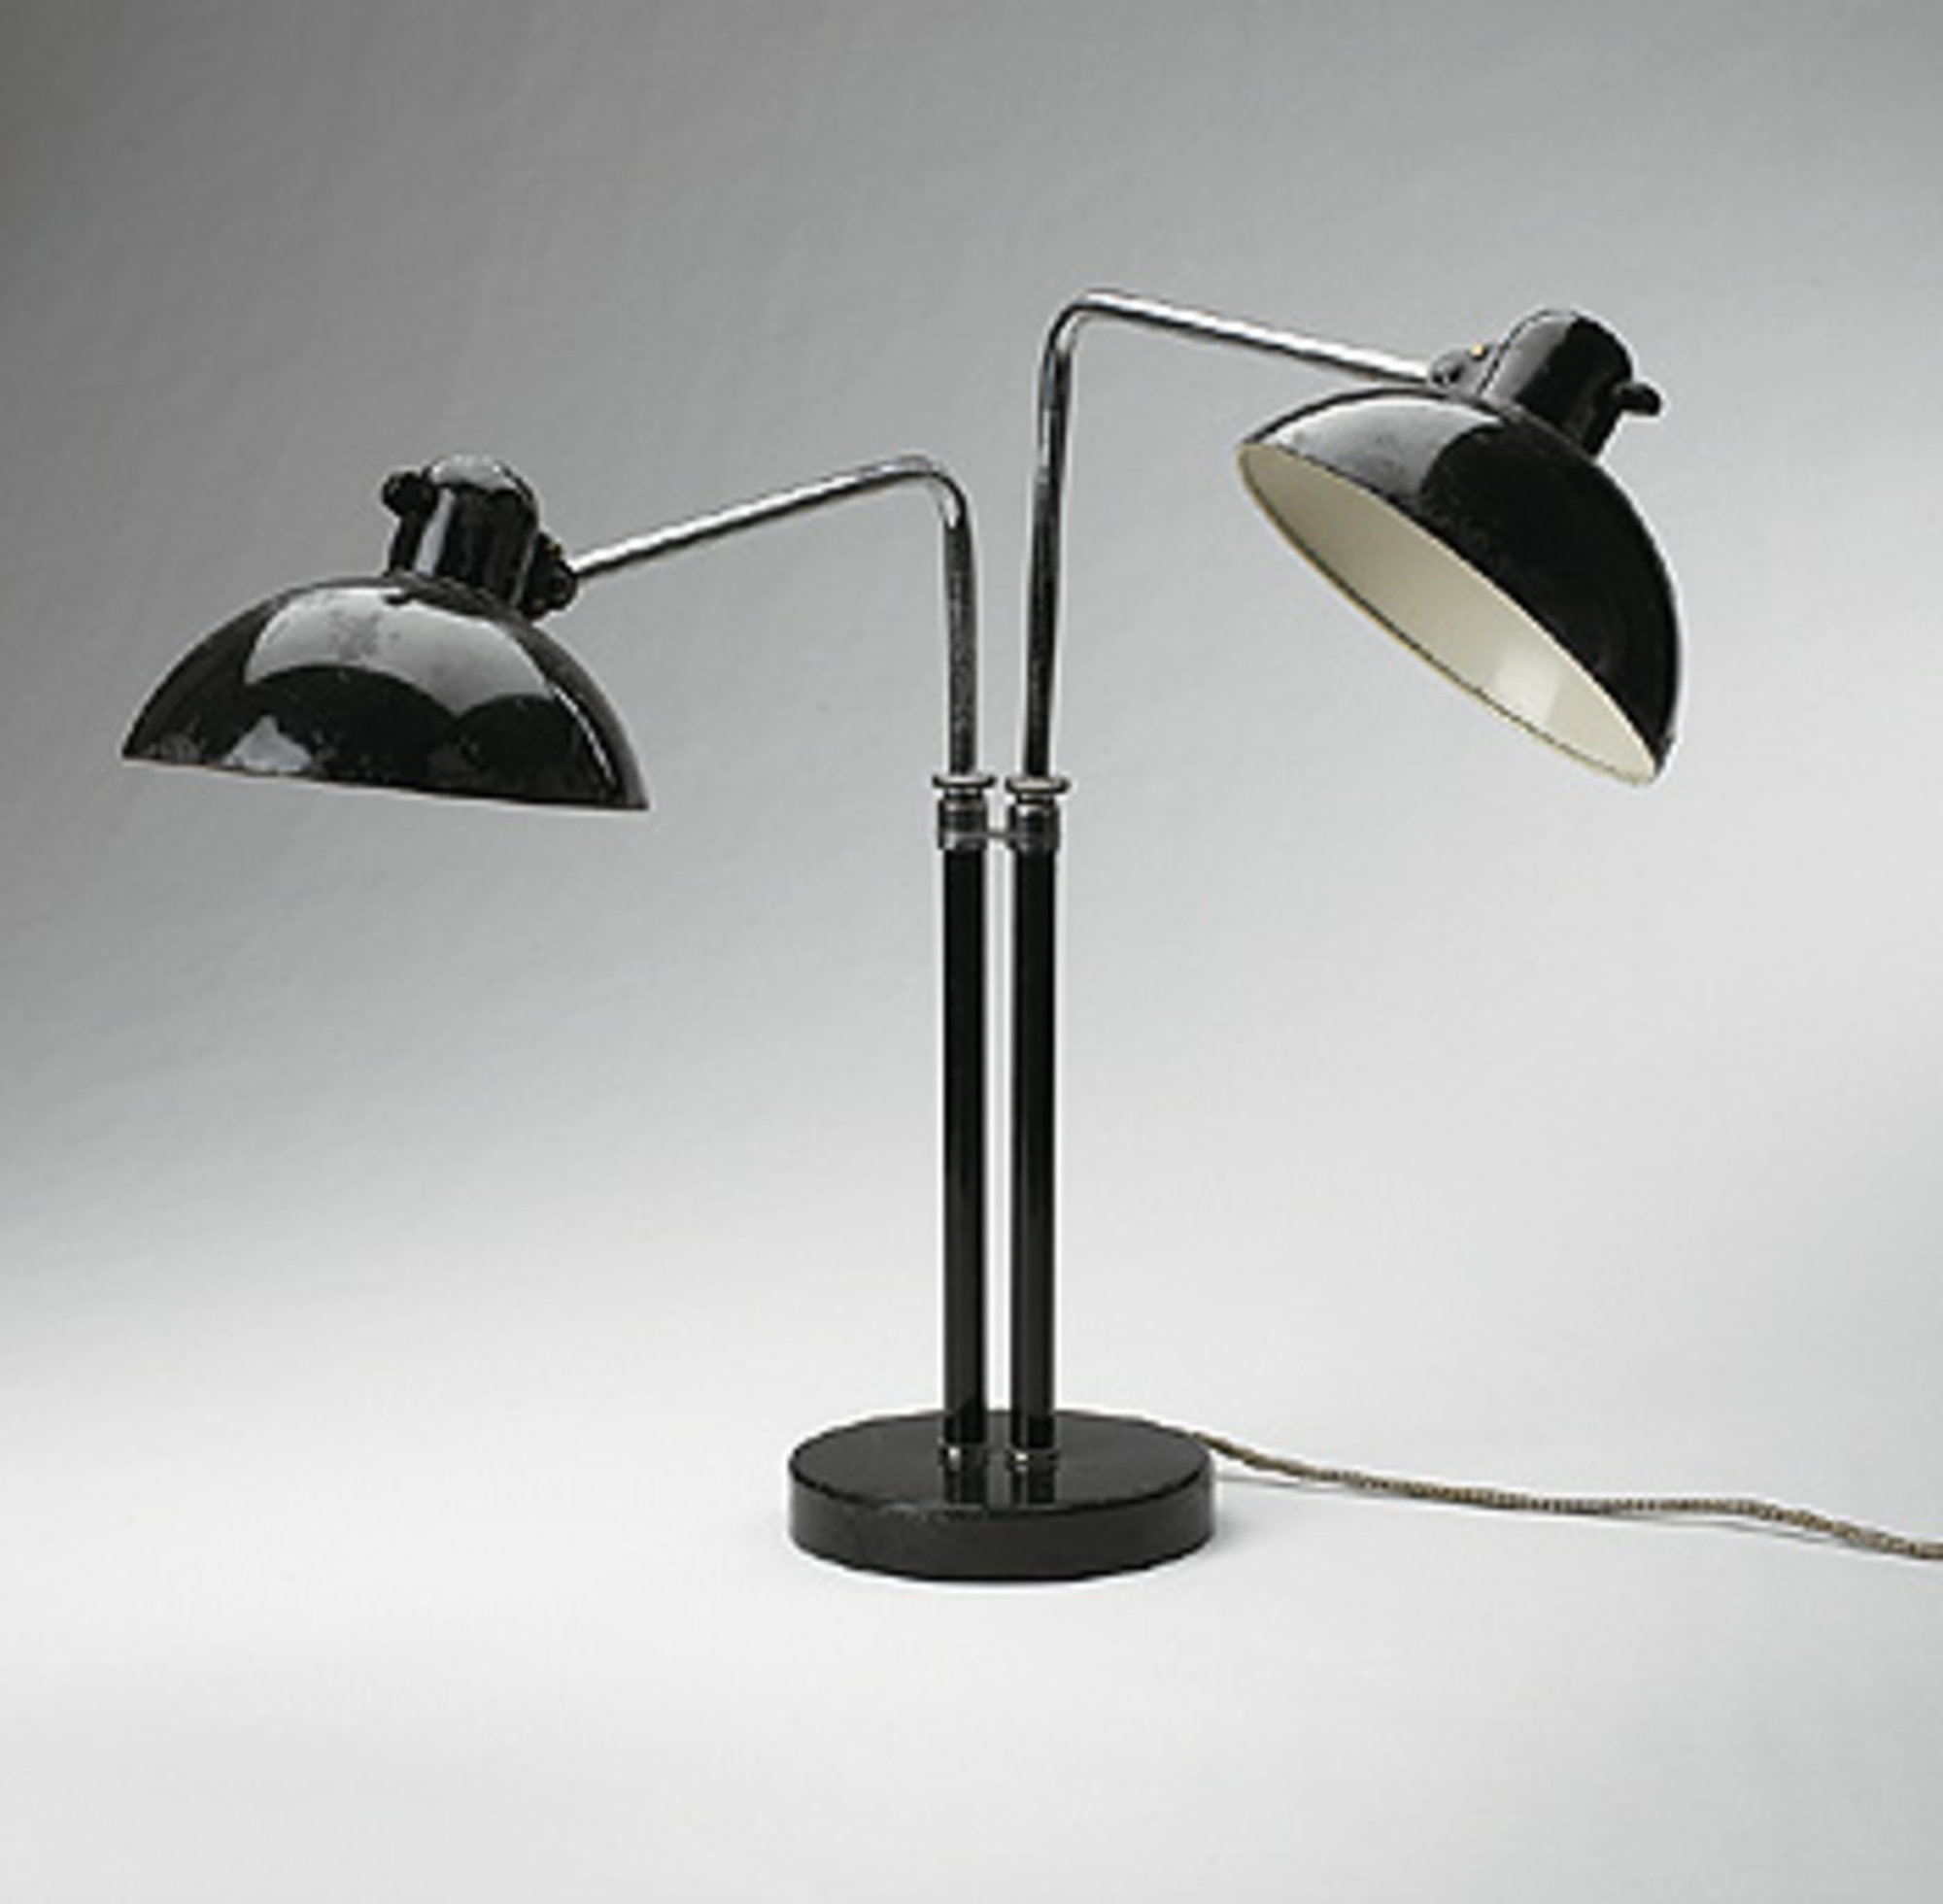 511 Christian Dell Double Arm Table Lamp Model 6580 Modern